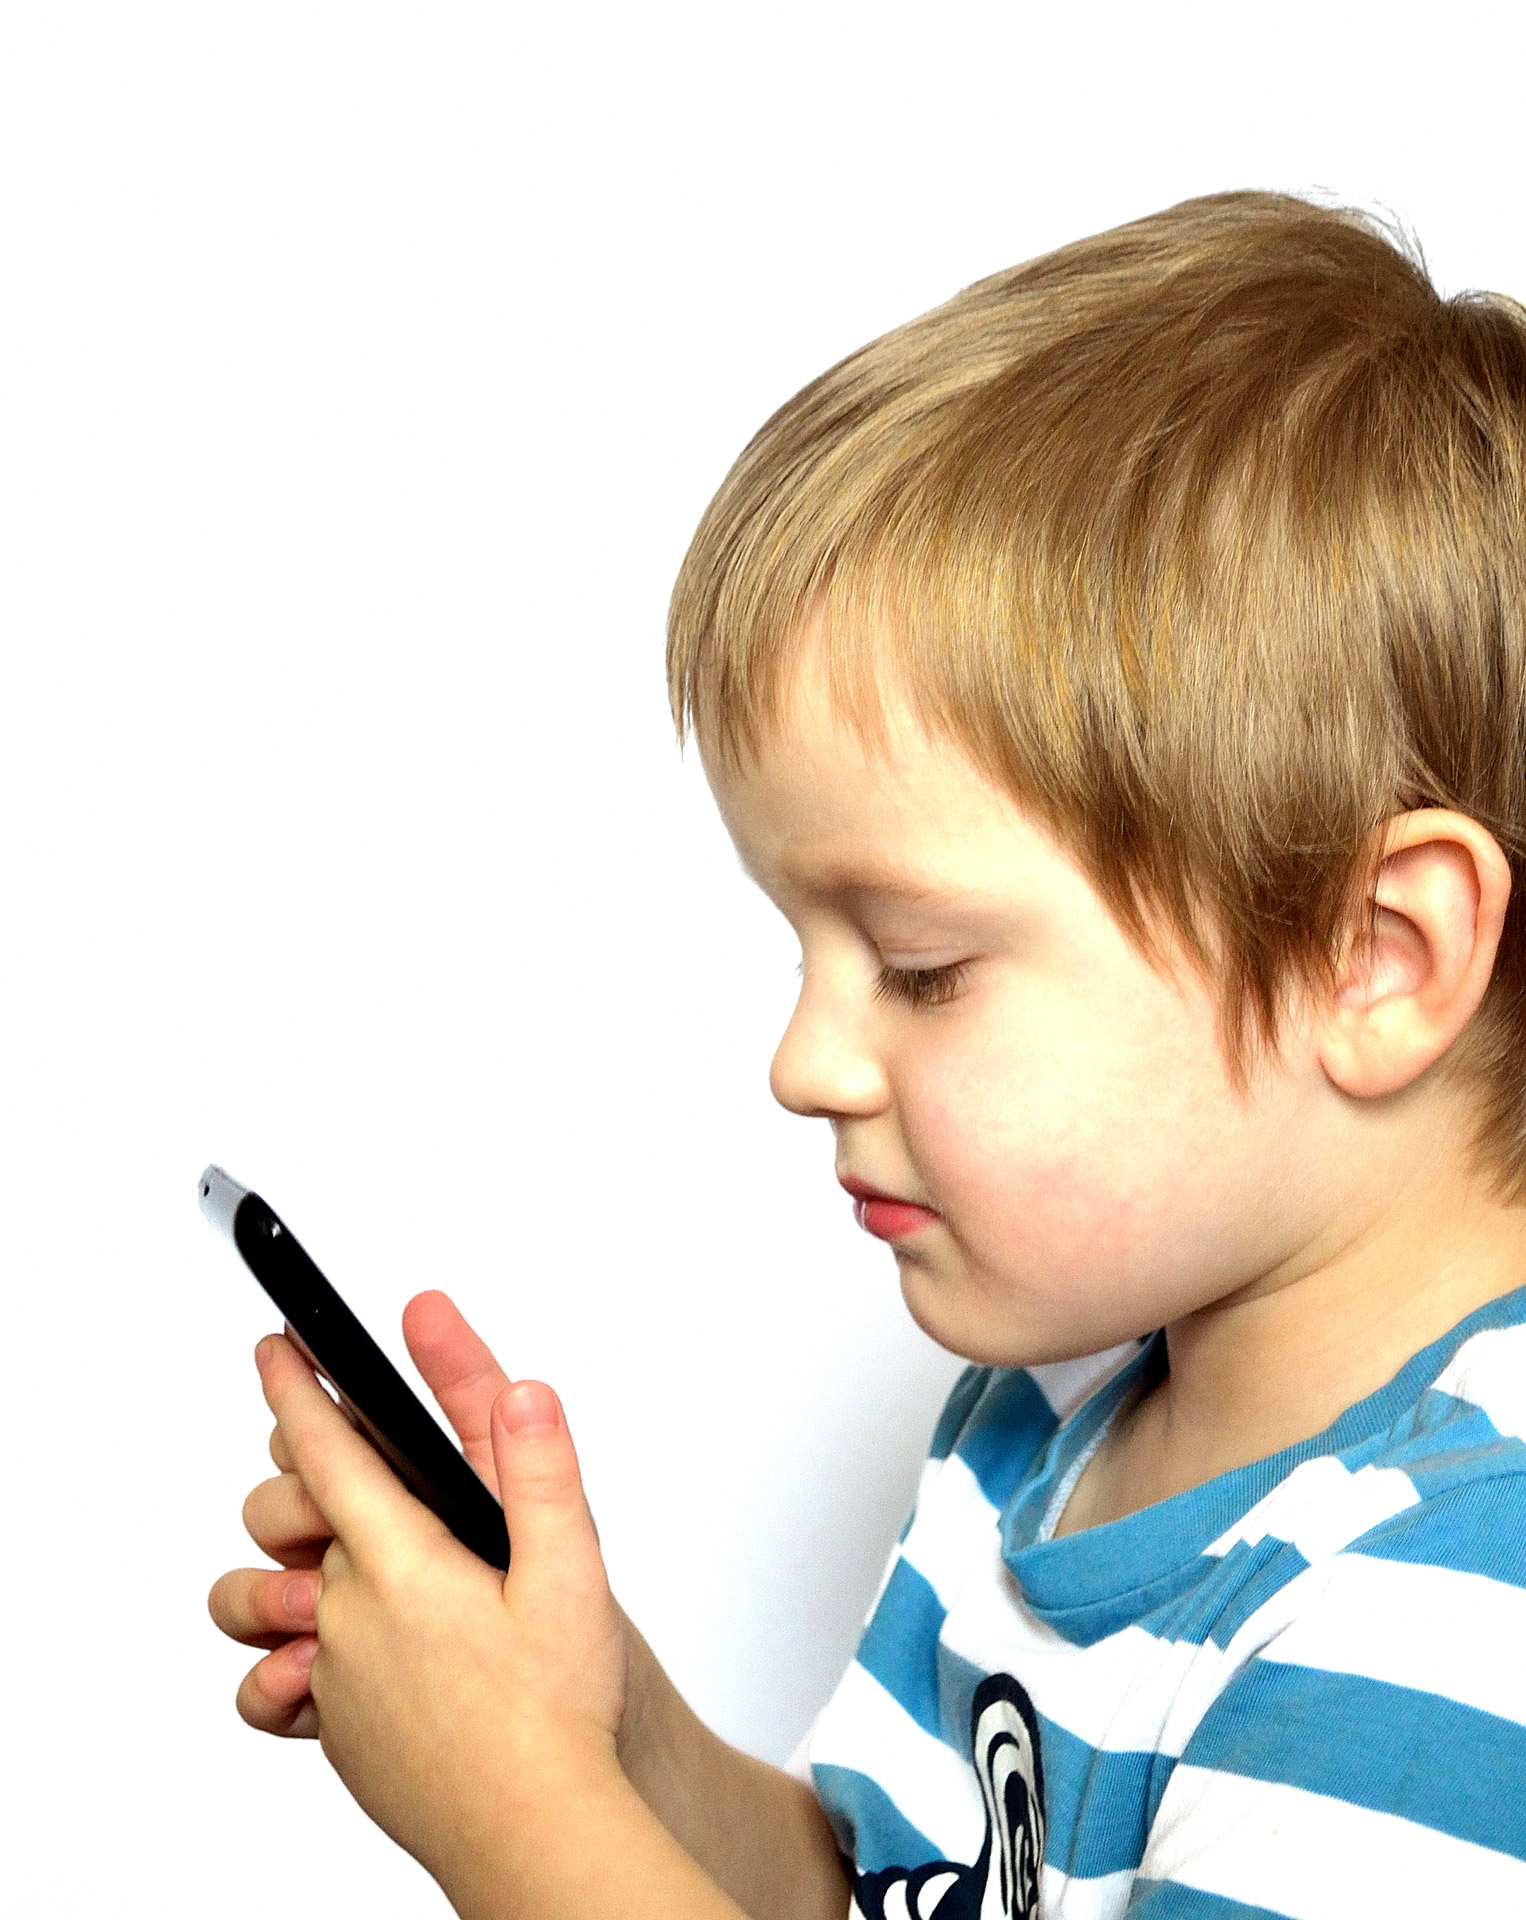 Setting Up a Child Friendly Android Phone is a fact of life these days, as these devices are ubiquitous